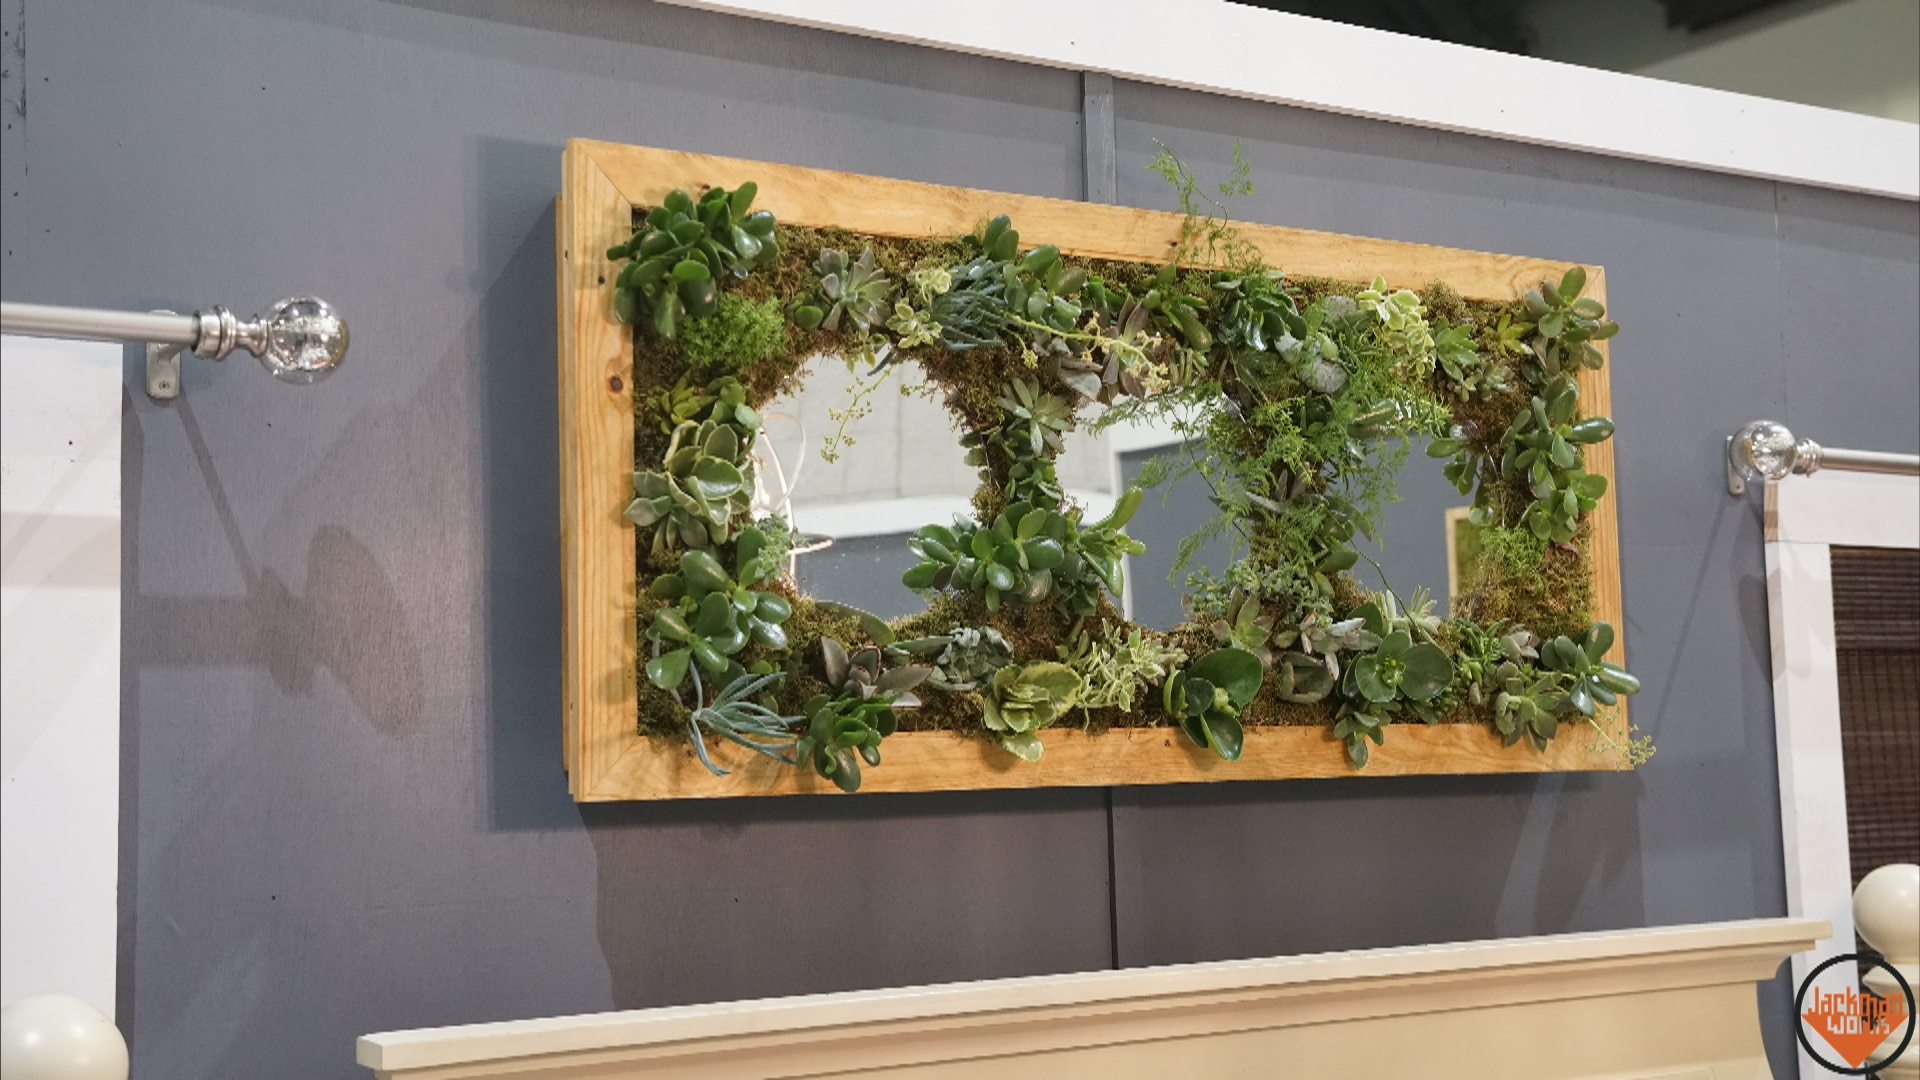 Jackman Works,Jackman,Woodworking,Carpentry,Living Wall,green Wall,making A Living  Wall,diy,do It Yourself,diy Living Wall,reclaimed Wood,pallet Wood ...